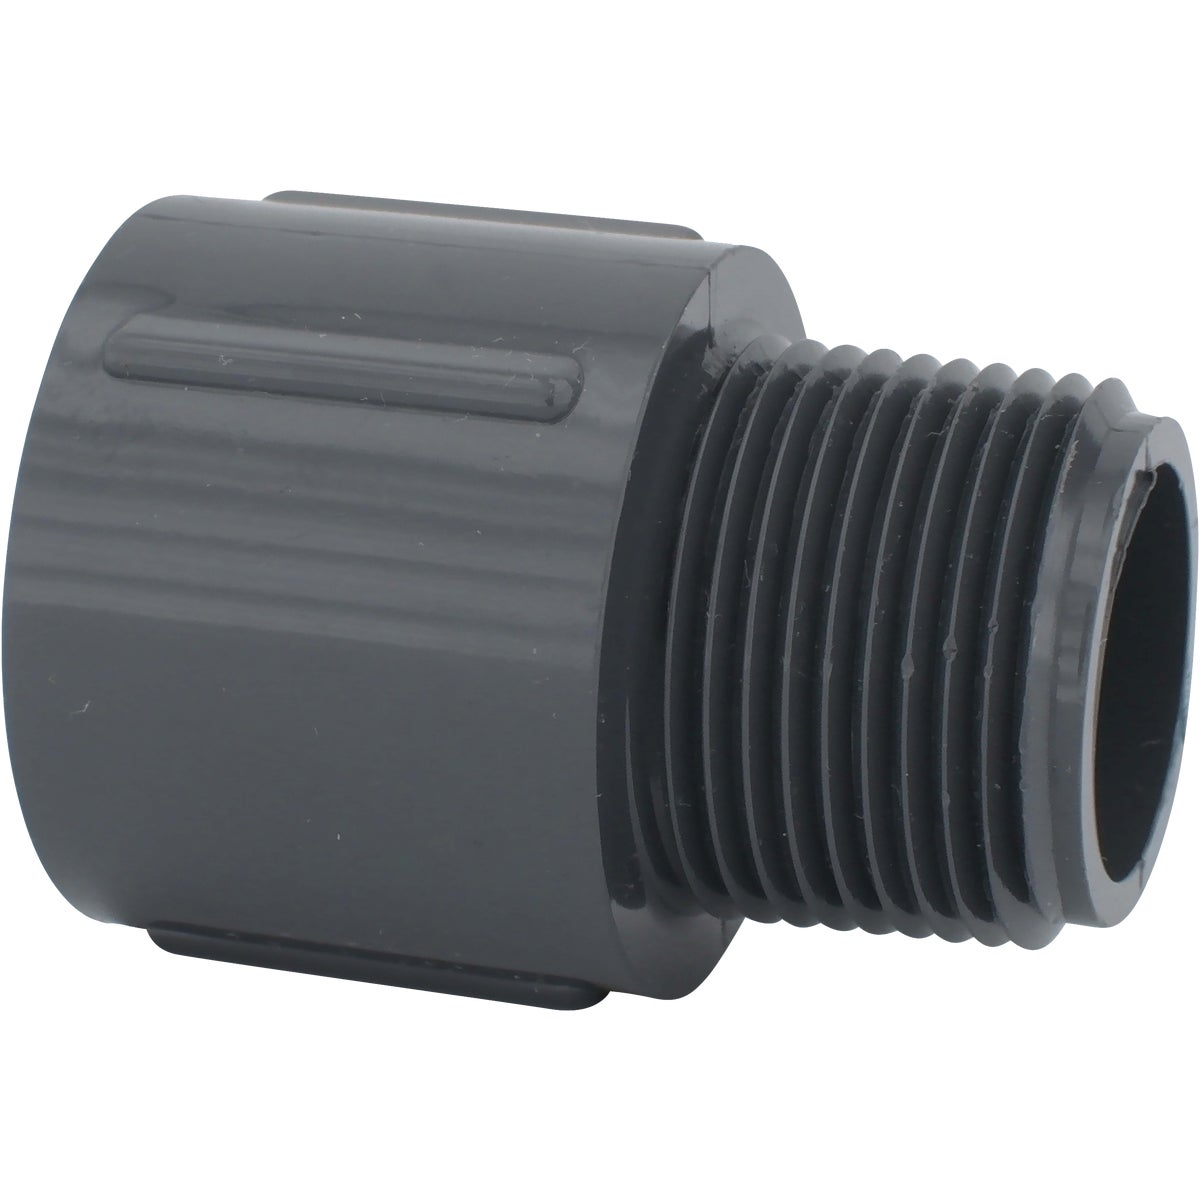 "1"" SCH80 MALE ADAPTER"